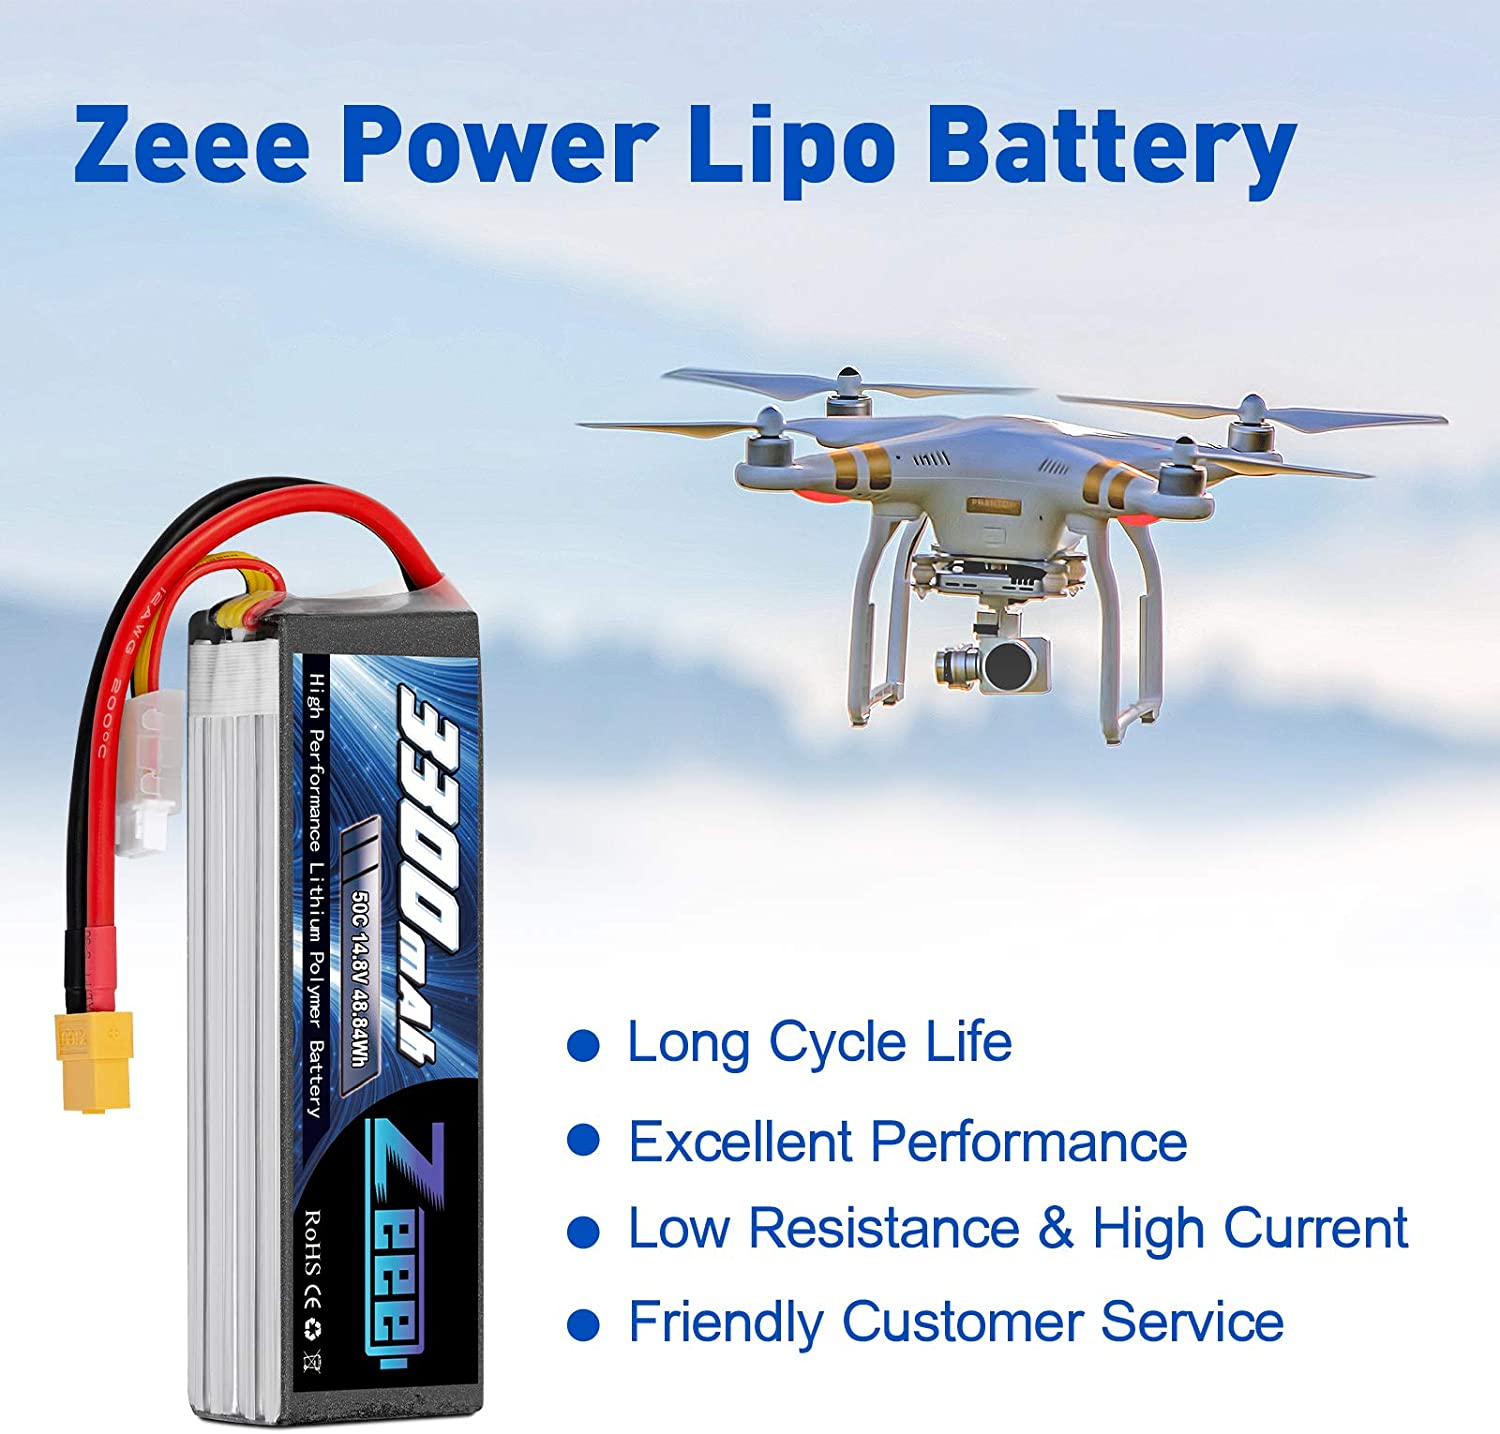 2 Packs Zeee 14.8V 4S Lipo Battery 50C 3300mAh Soft Case Battery with XT60 Plug for RC Airplane Helicopter RC Boat UAV Drone FPV RC Car Truck Boat